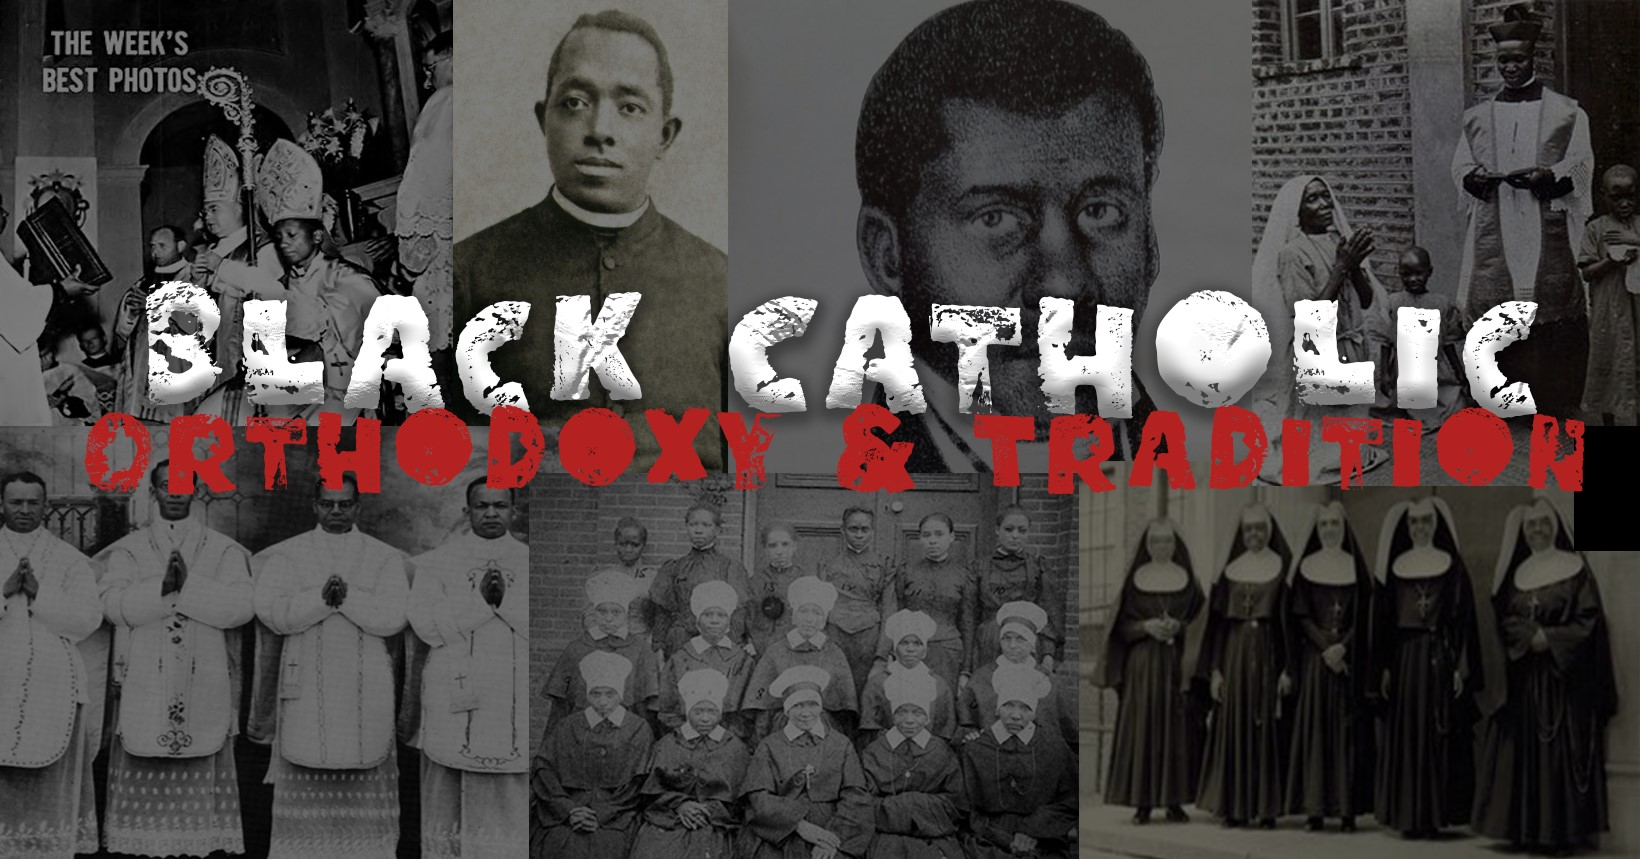 Essays on Being Catholic, Black, American & Traditional